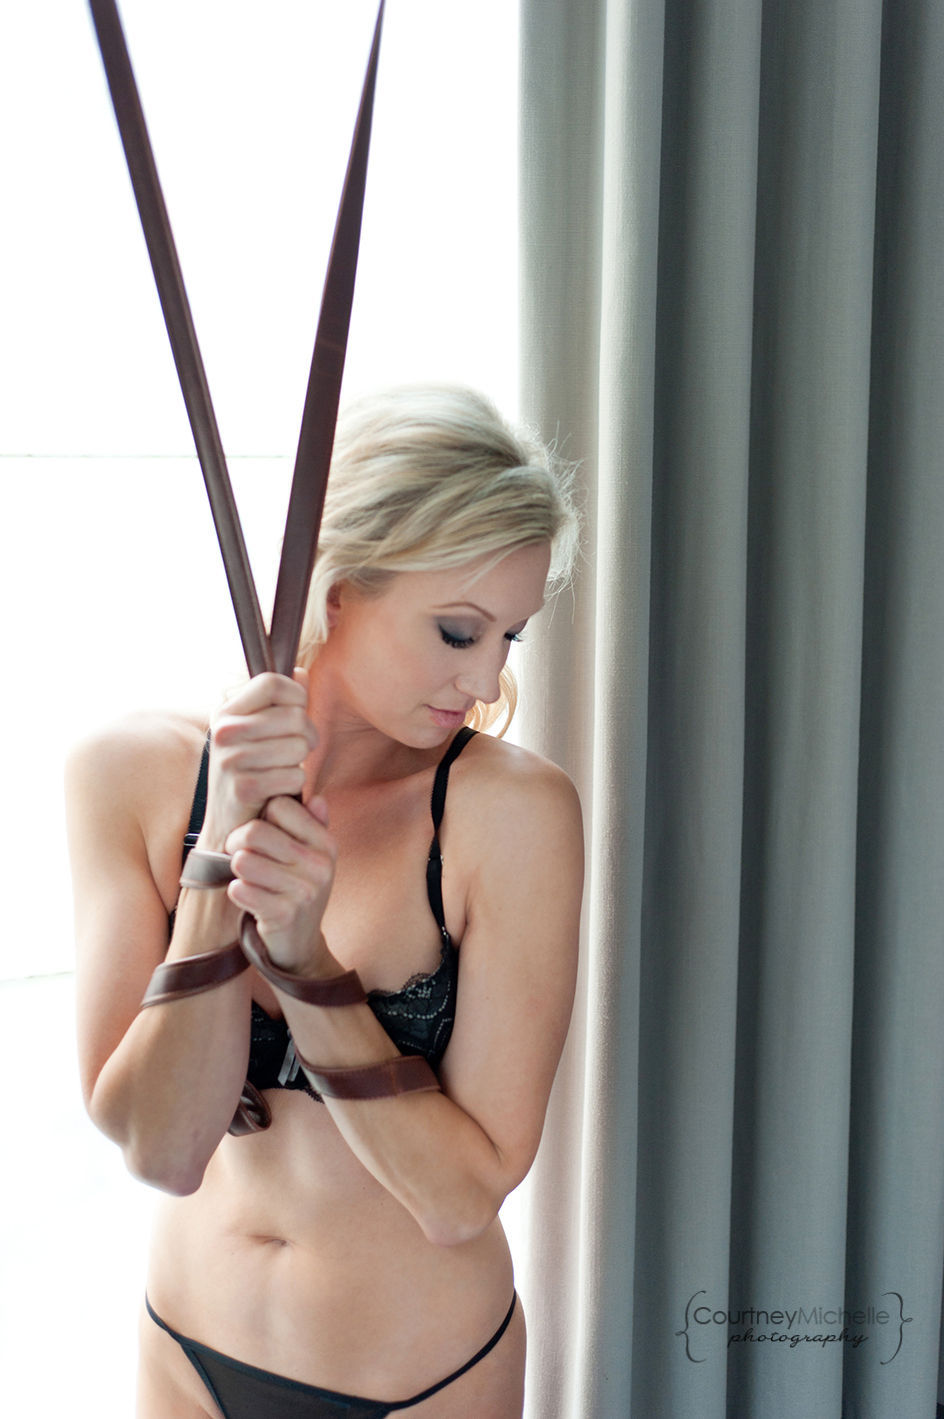 woman-in-lingerie-tied-wrists-next-to-window-light-and-curtains-chicago-boudoir-photography-by-courtney-laper.jpg